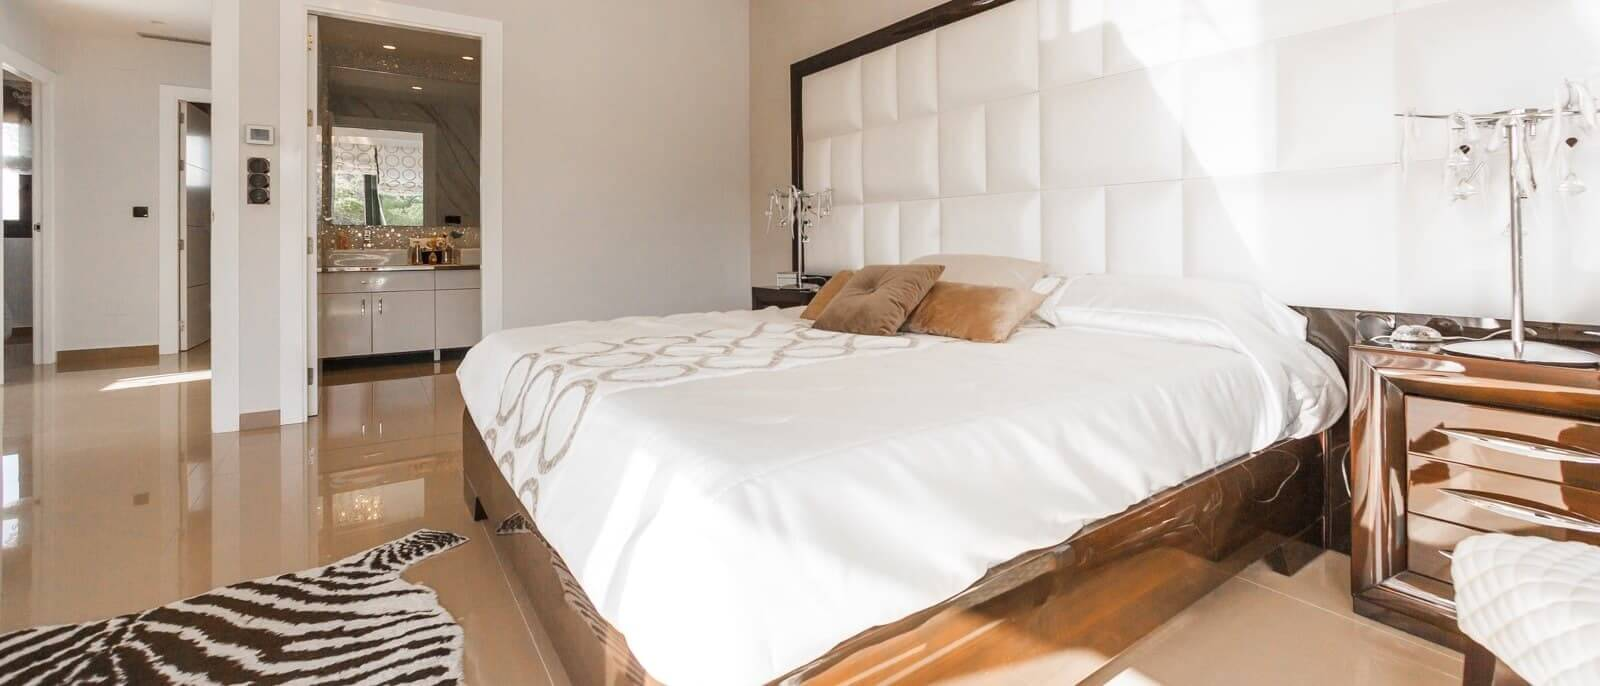 a look into a modern bedroom with white headboard and bronze furnishing